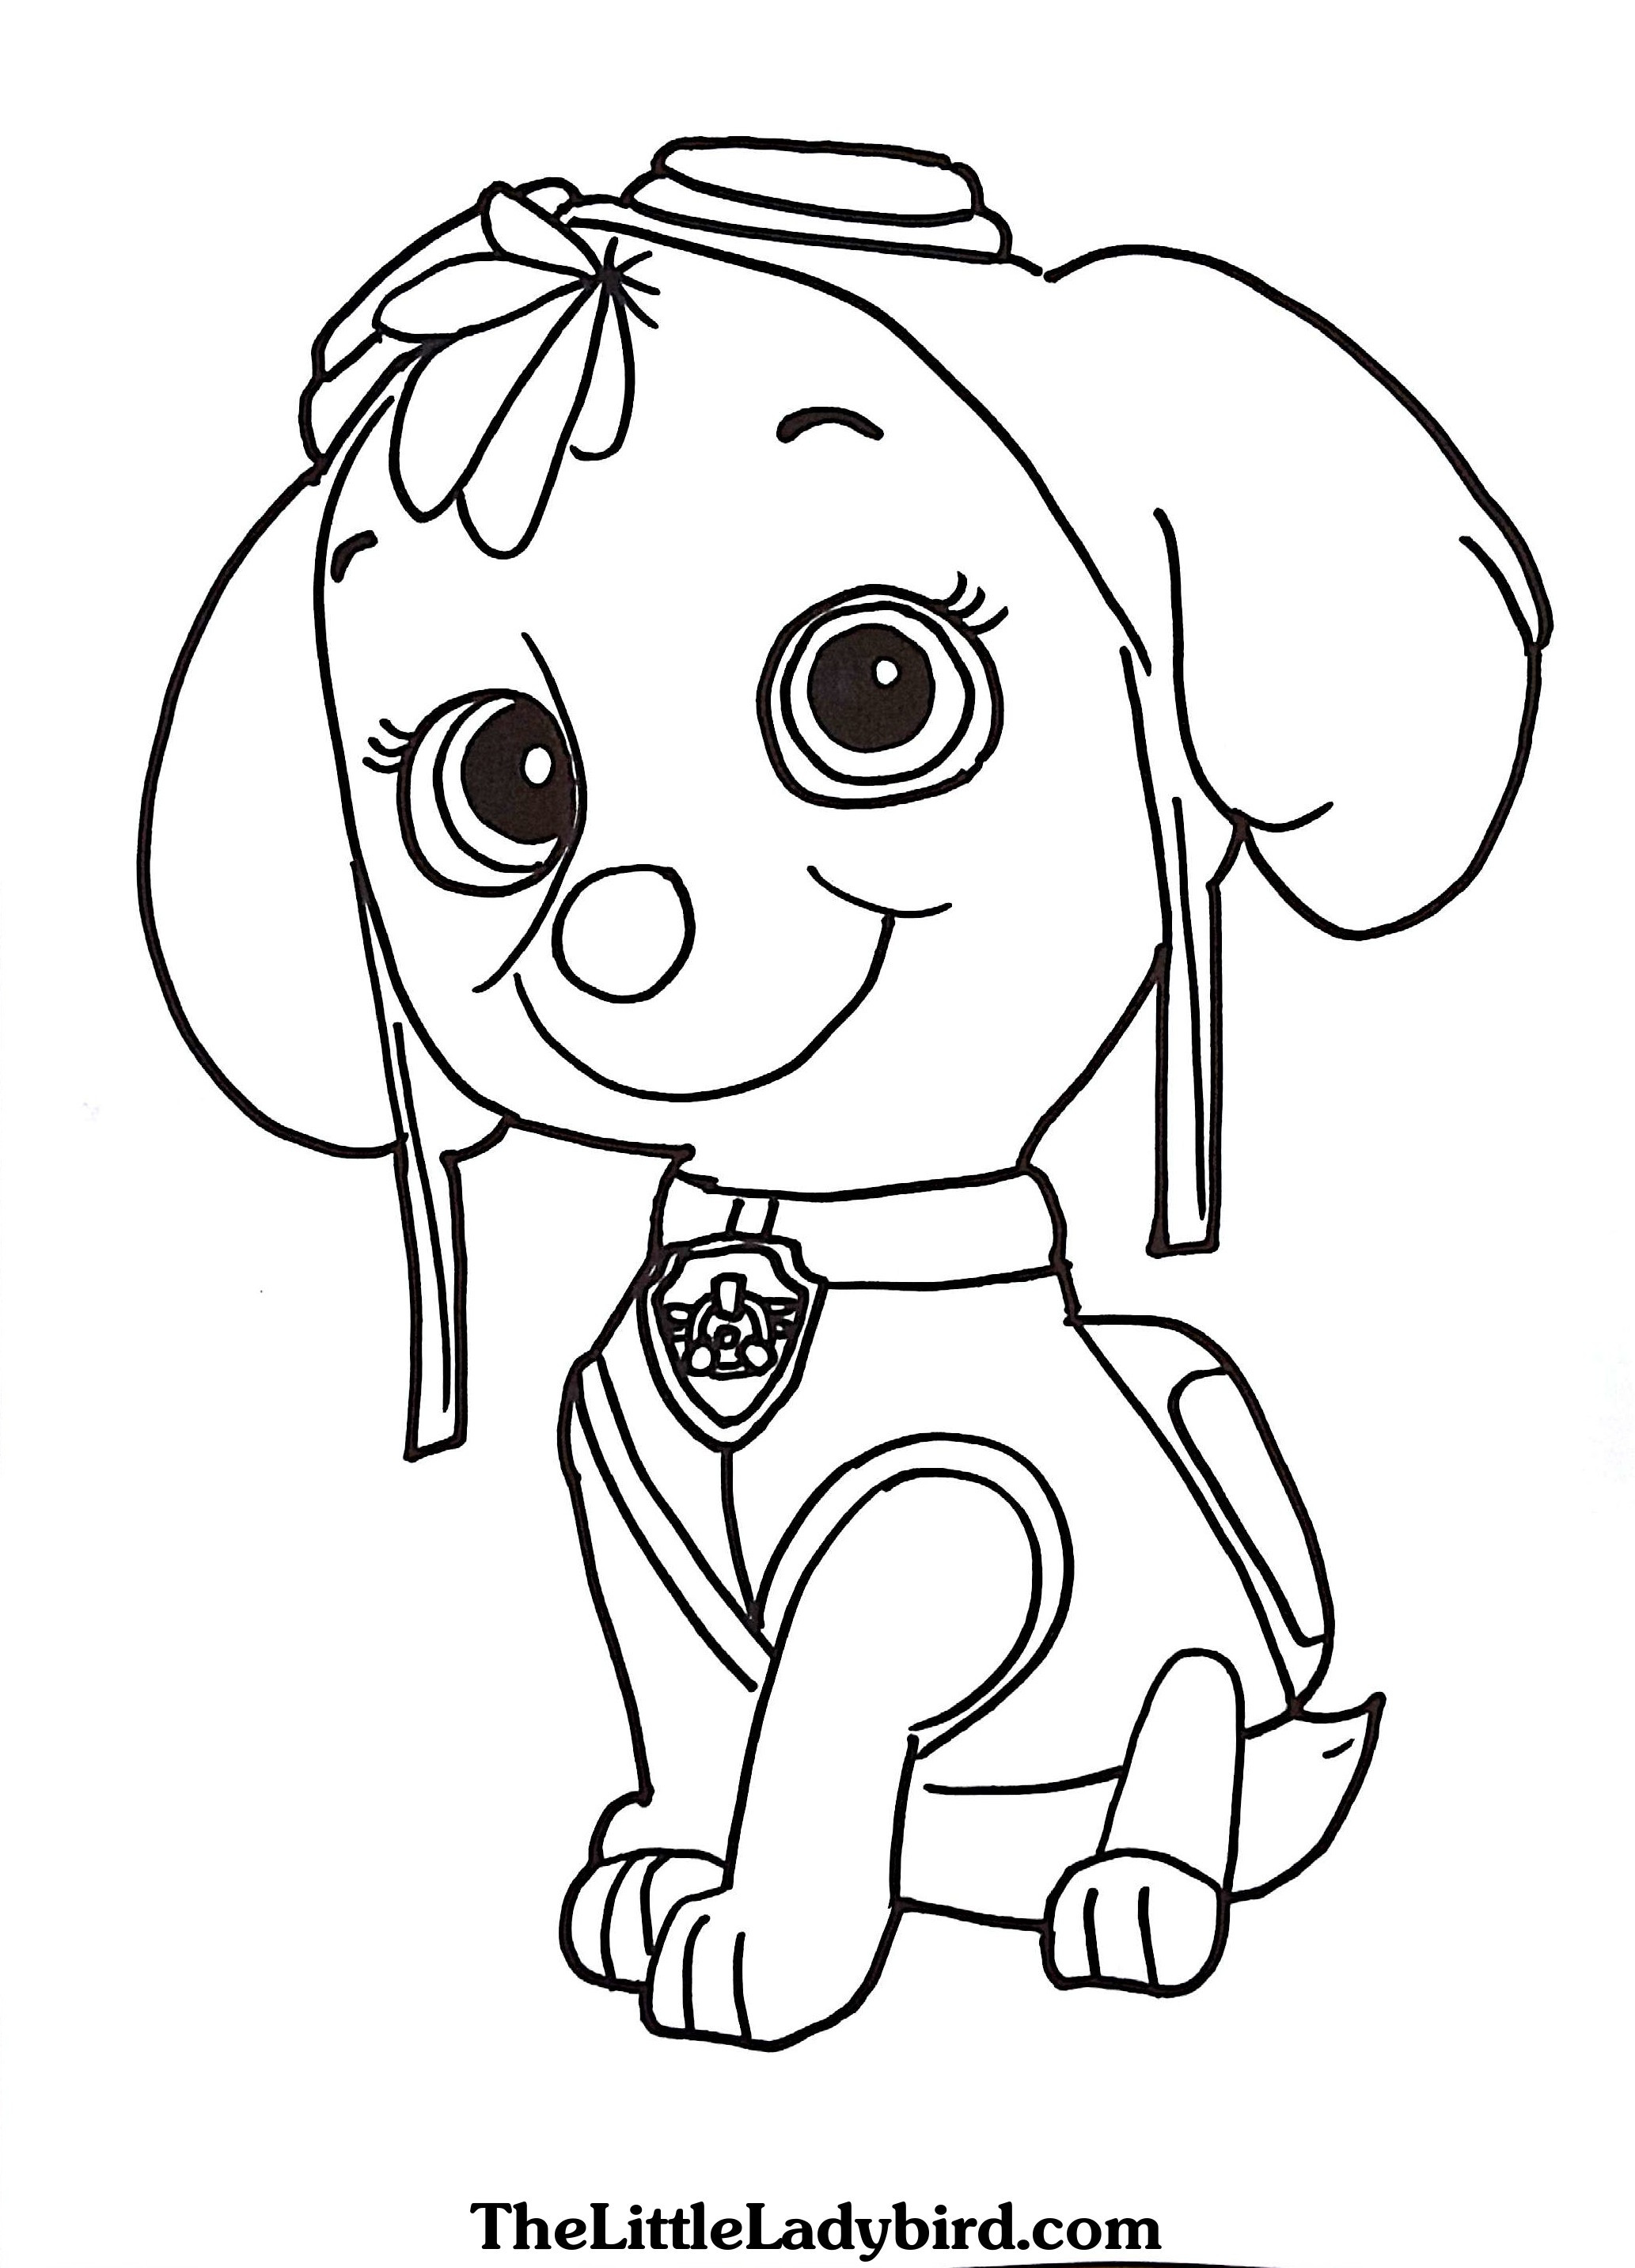 Paw Patrol Coloring Pages Pdf At Getdrawings Com Free For Personal